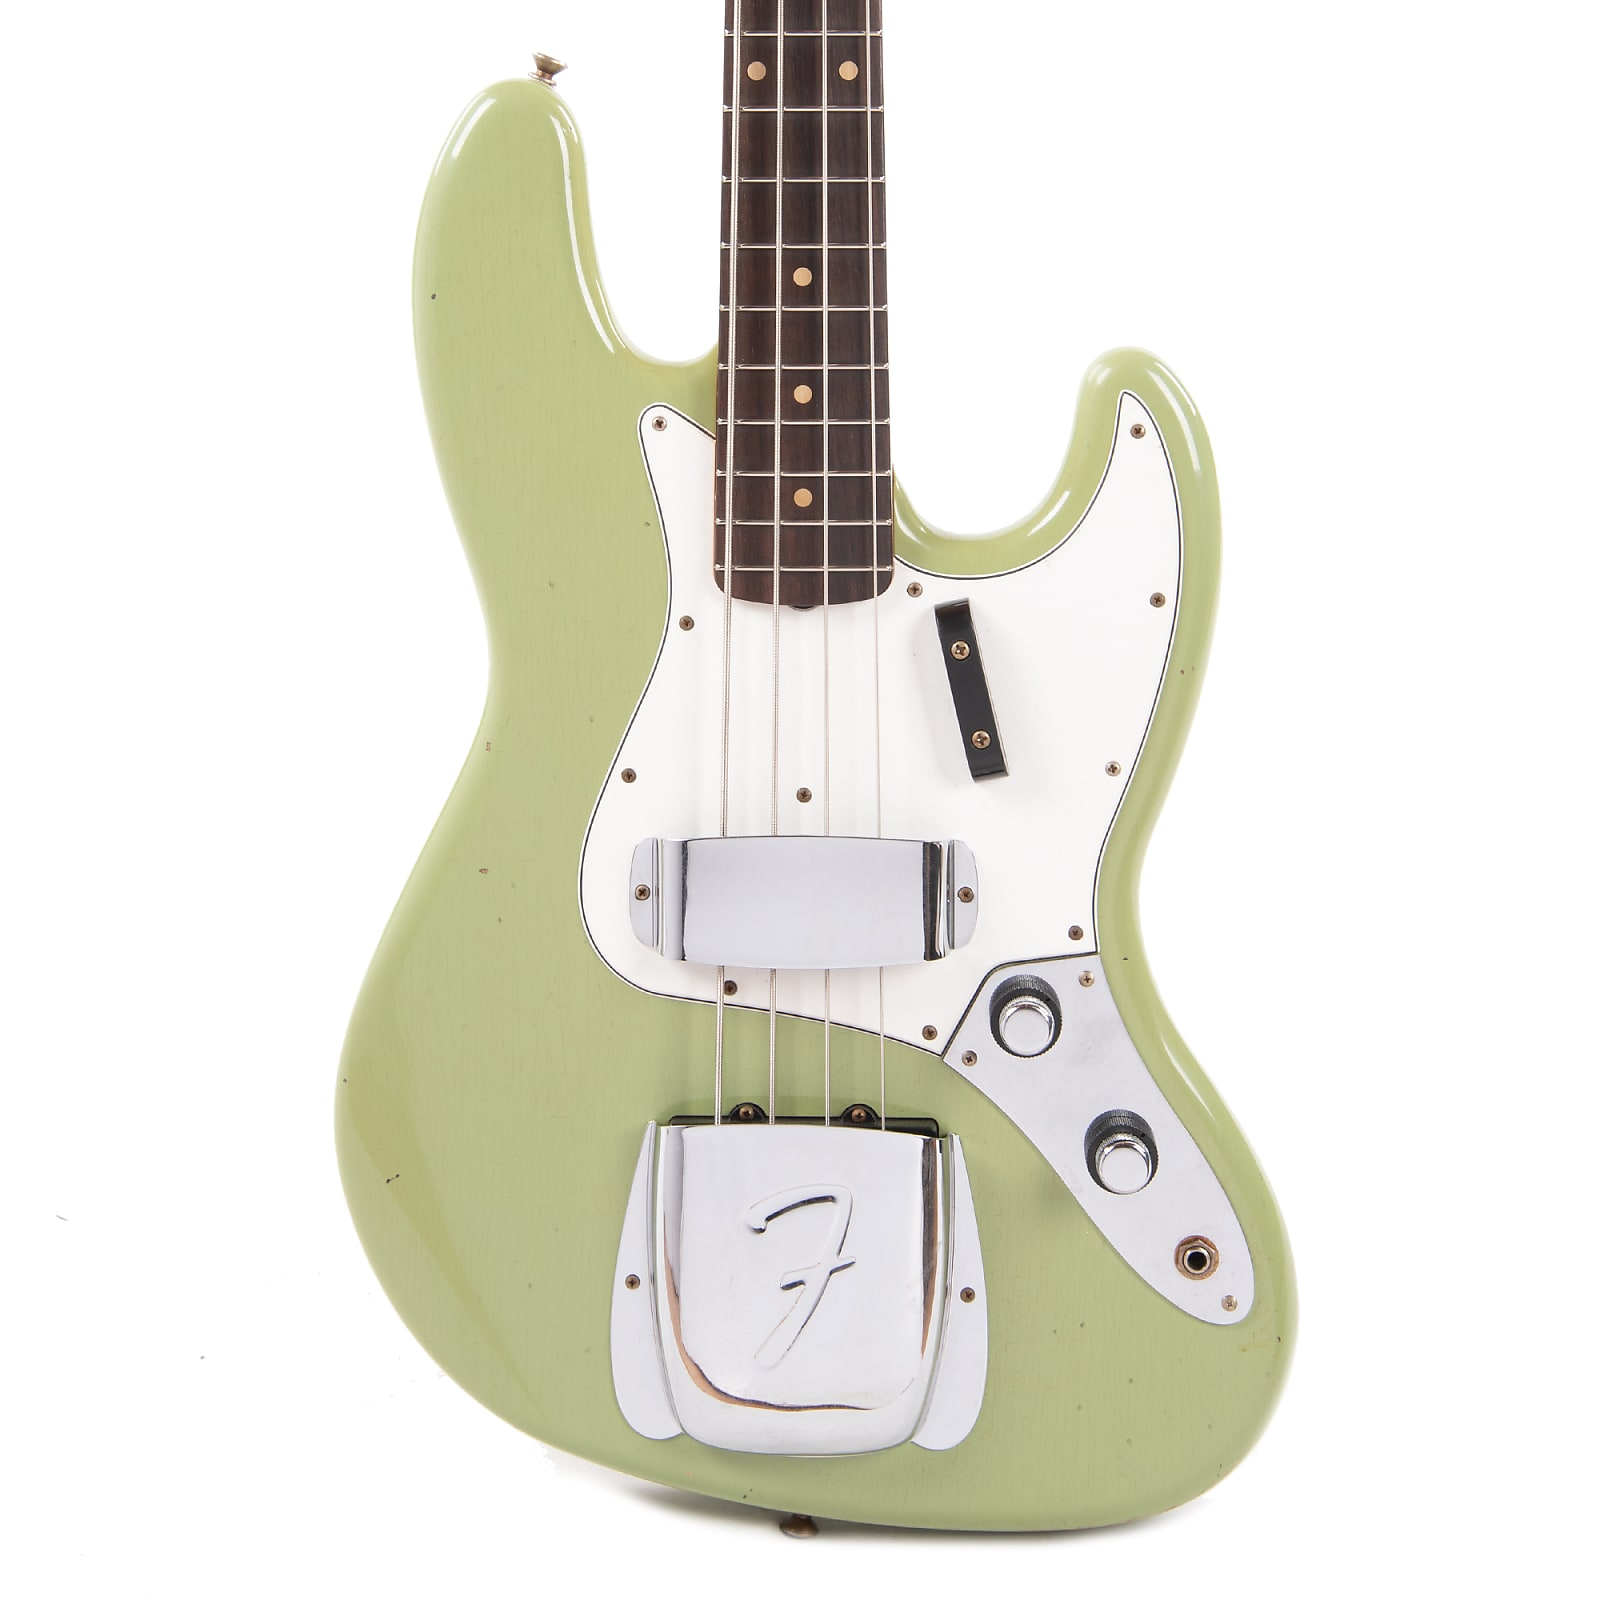 "Fender Custom Shop 1960 Jazz Bass ""CME Spec"" Relic Faded/Aged Sweet Pea Green w/Painted Headcap (Serial #R98838)"